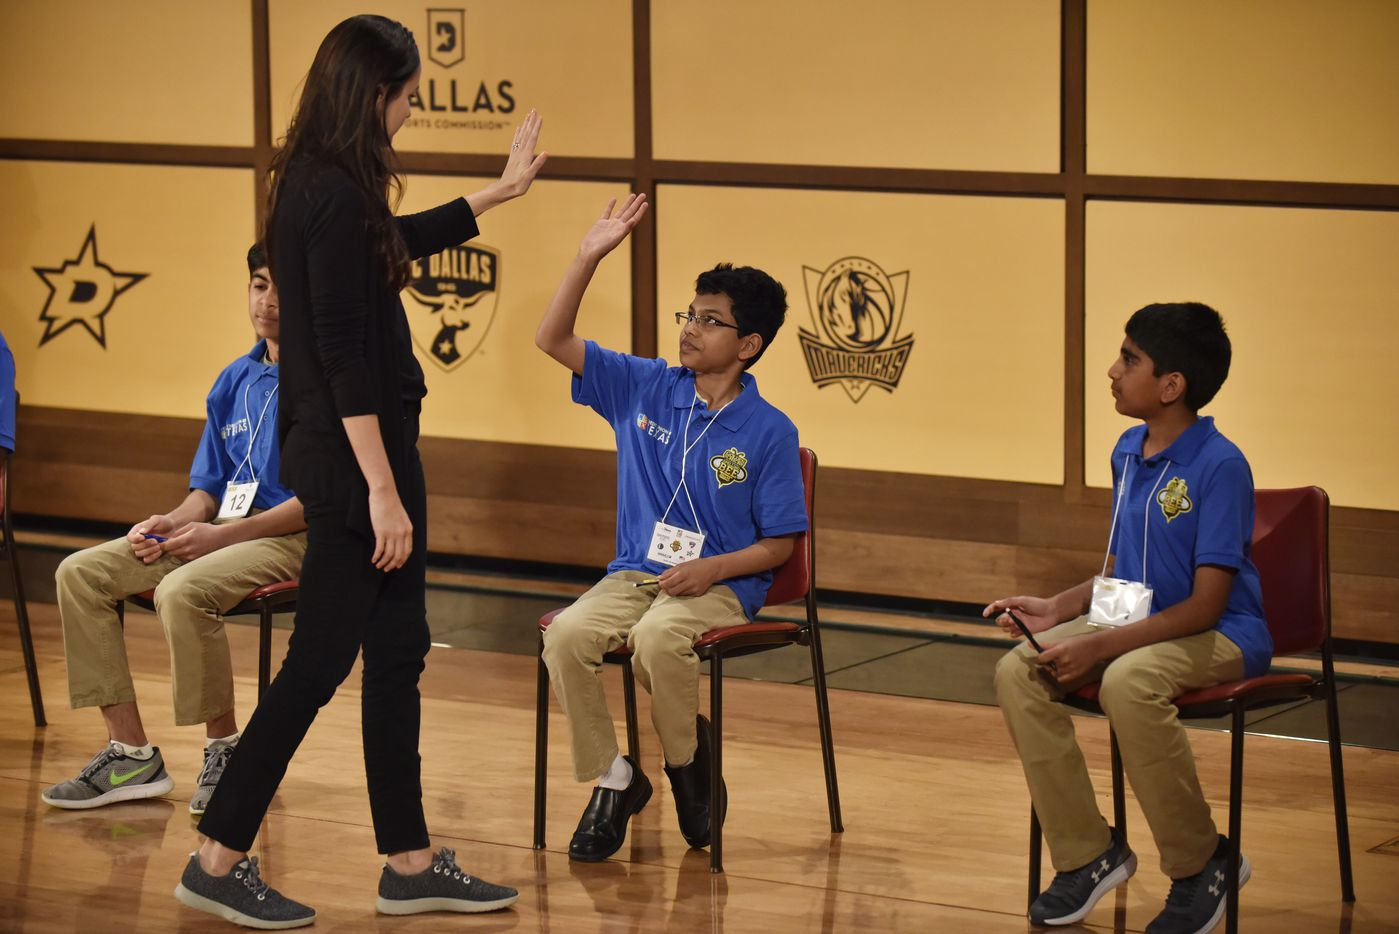 Sohum Sukhatankar, center, is one of four competitors given a high-five by a Stephanie Wilcox of WFAA after the final four completed a 25-word written test that served as the final round of the 61st annual Golden Chick Dallas Regional Spelling Bee at the George W. Bush Presidential Center on the campus of Southern Methodist University in Dallas, Saturday, March 09, 2019. Sukhatankar tied for second and will be advancing to the National Spelling Bee in Washington D.C. Abhijay Kodali, far-right, finished first earning a perfect score on the 25-word written test.